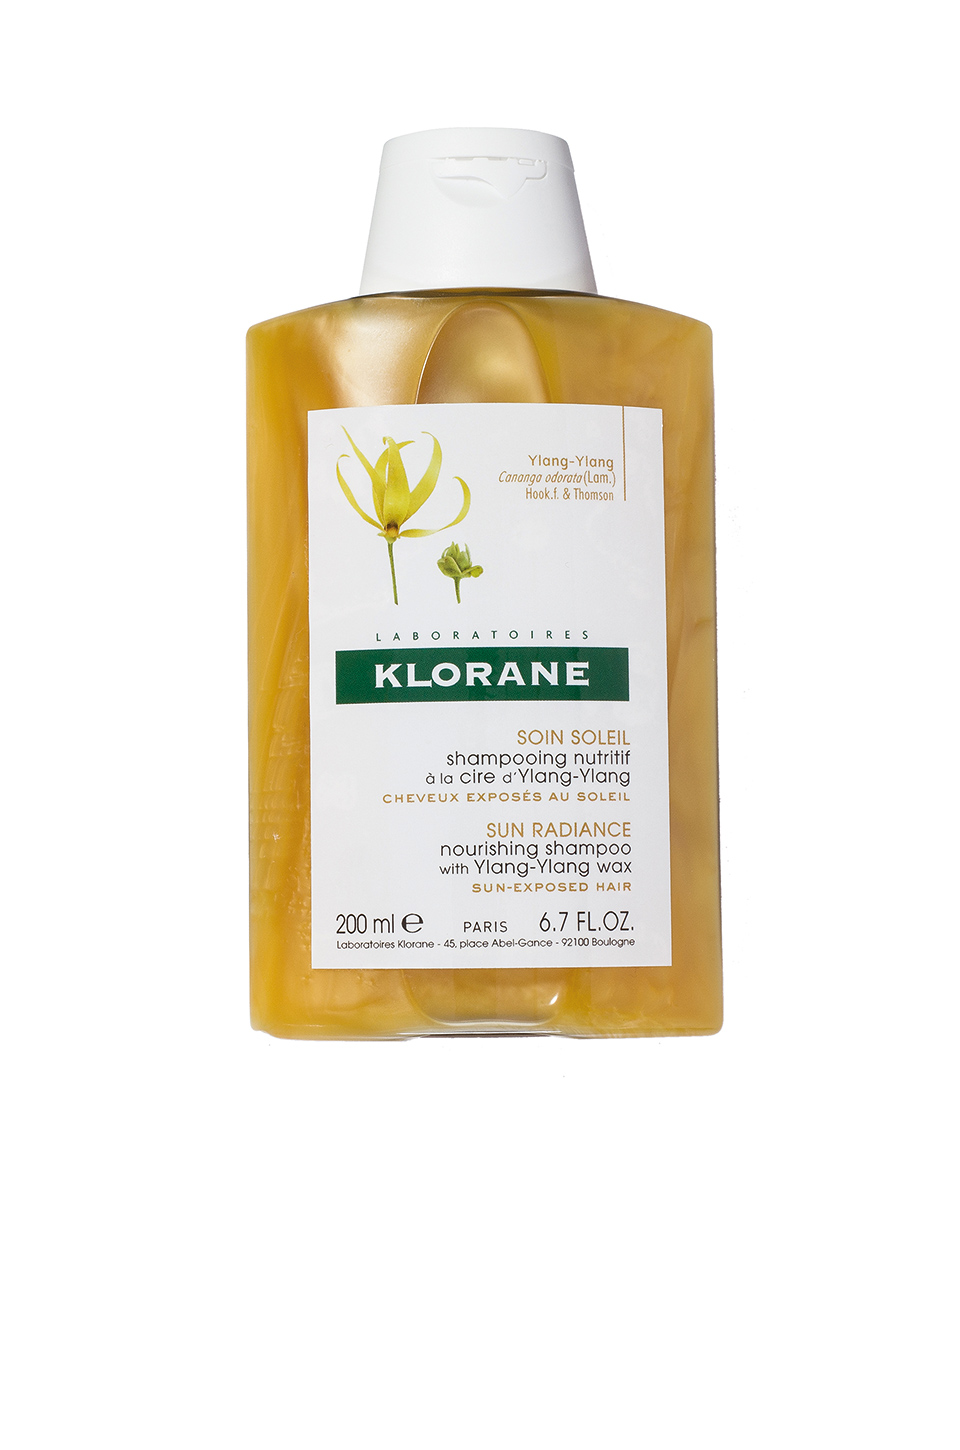 Klorane Nourishing Shampoo with Ylang-Ylang in